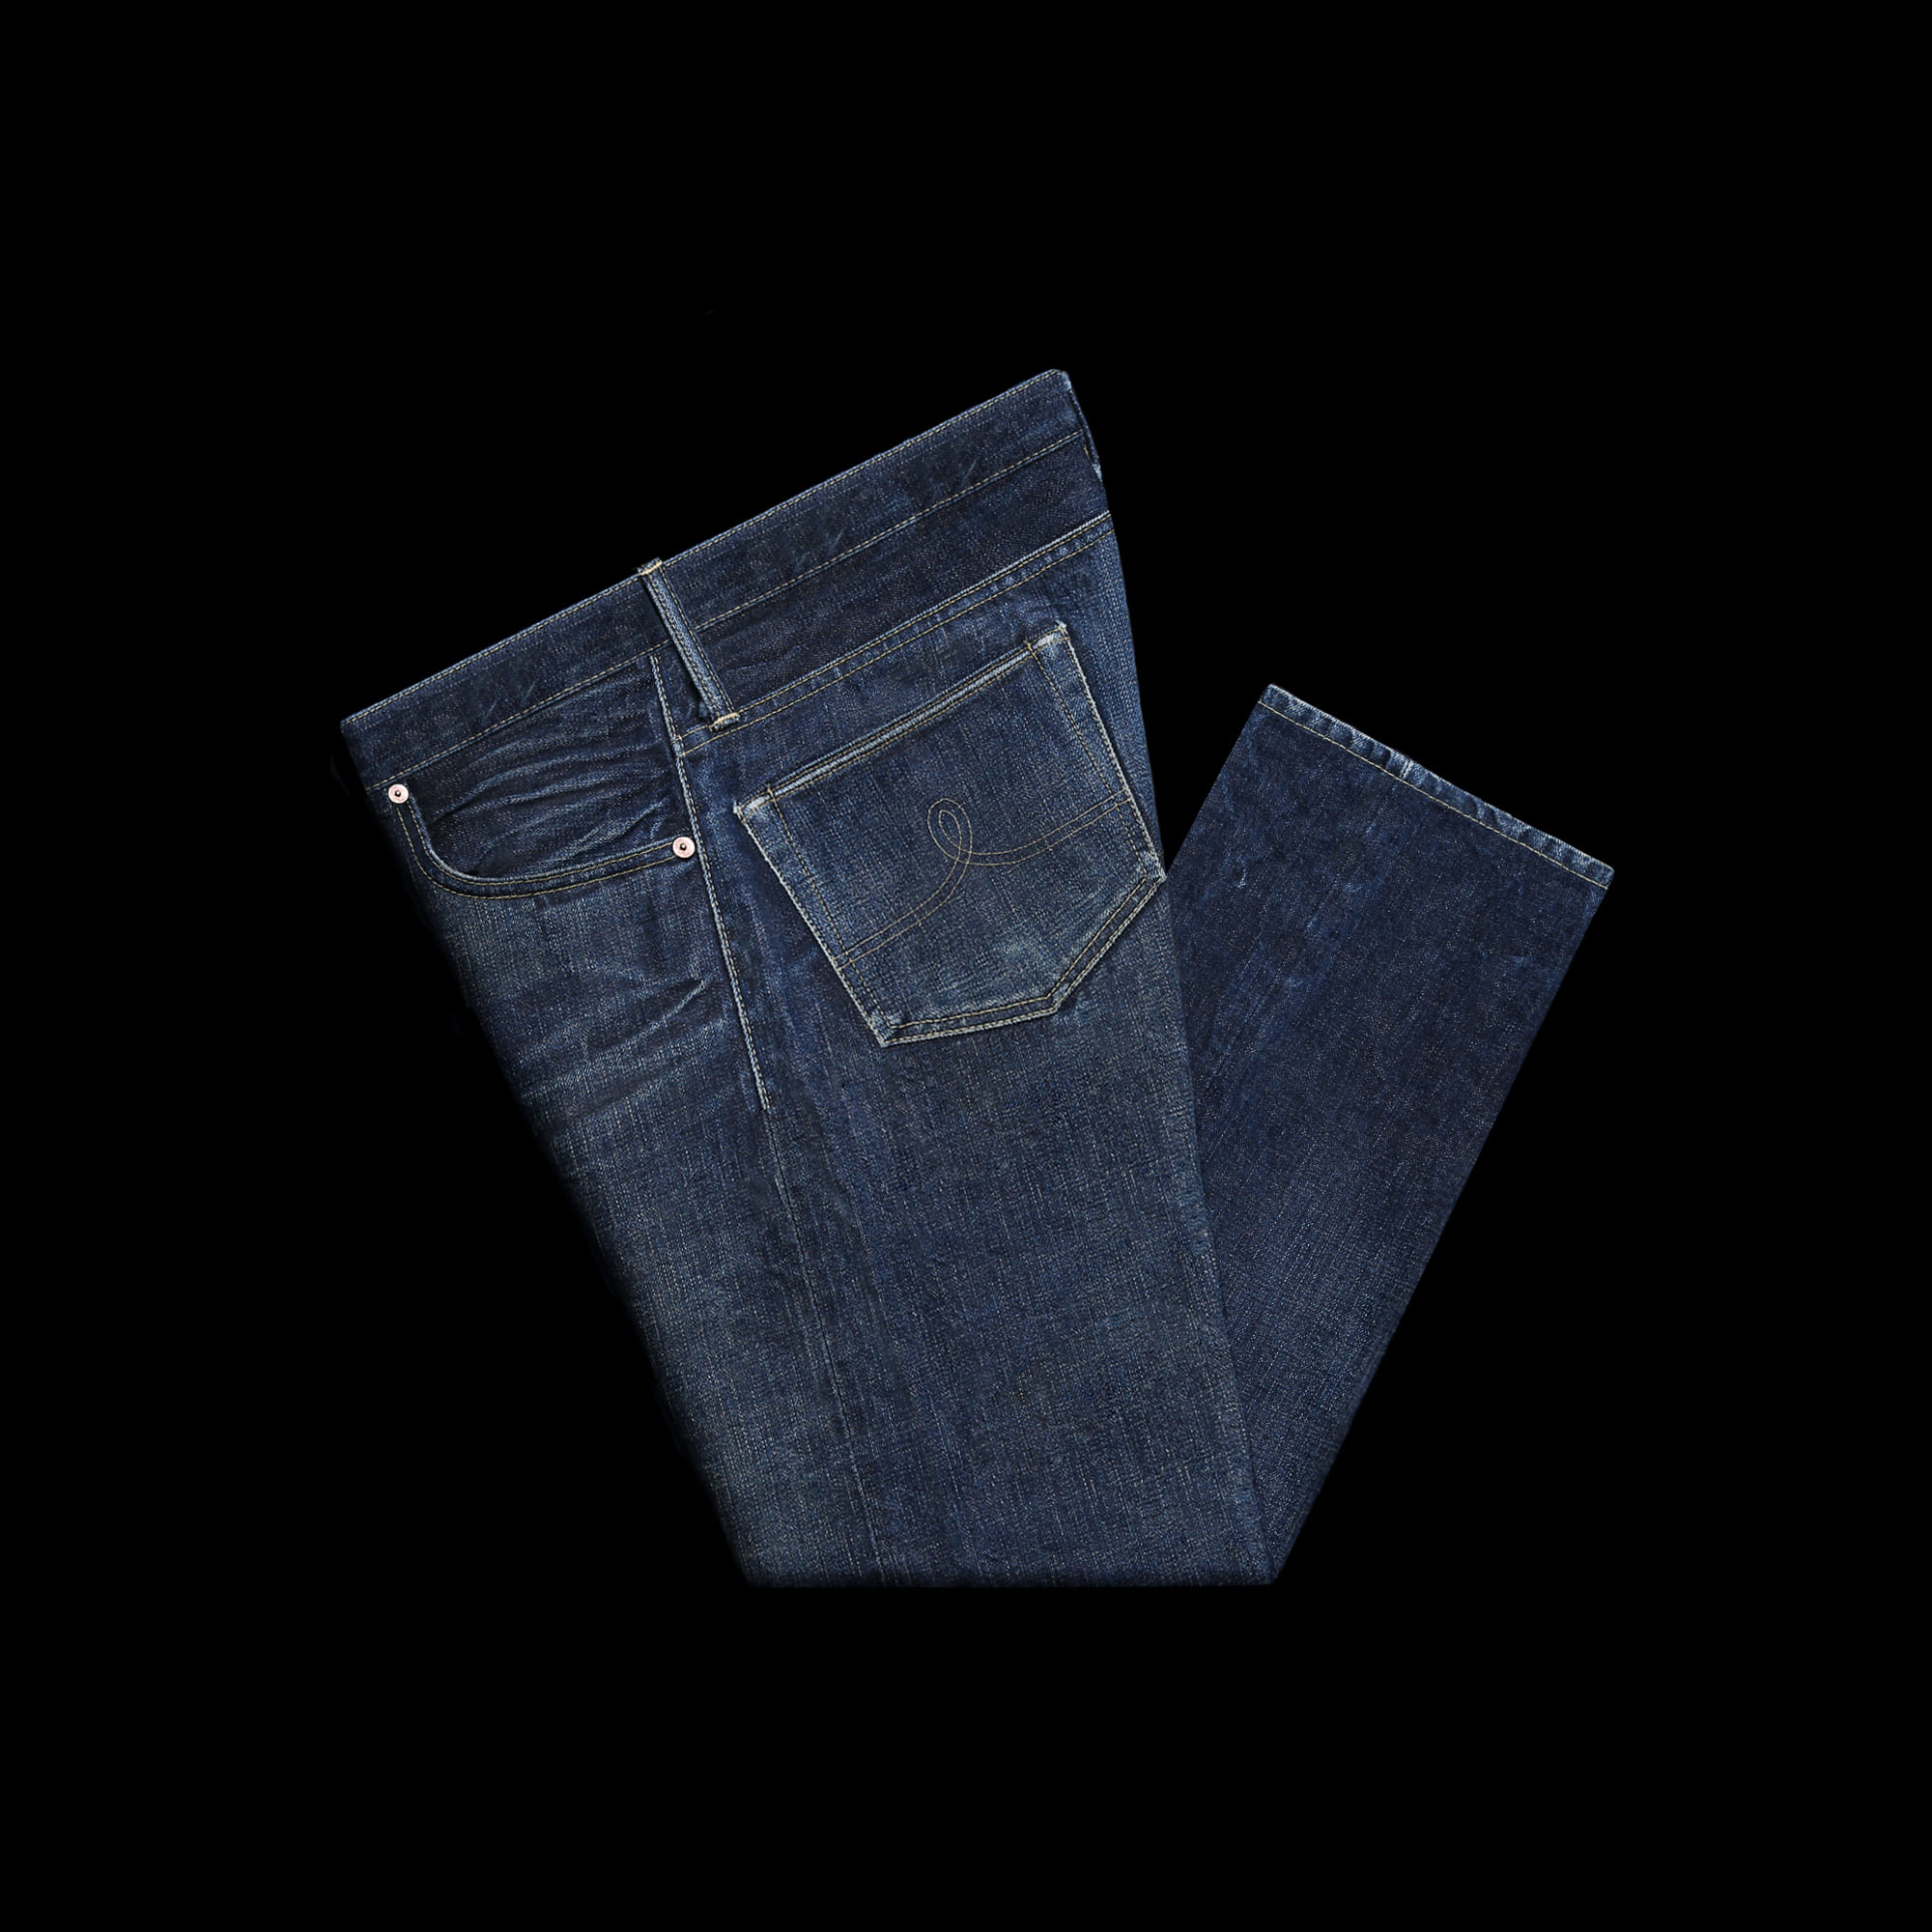 RRLLIMITED EDITIONSELVEDGE DENIM PANT